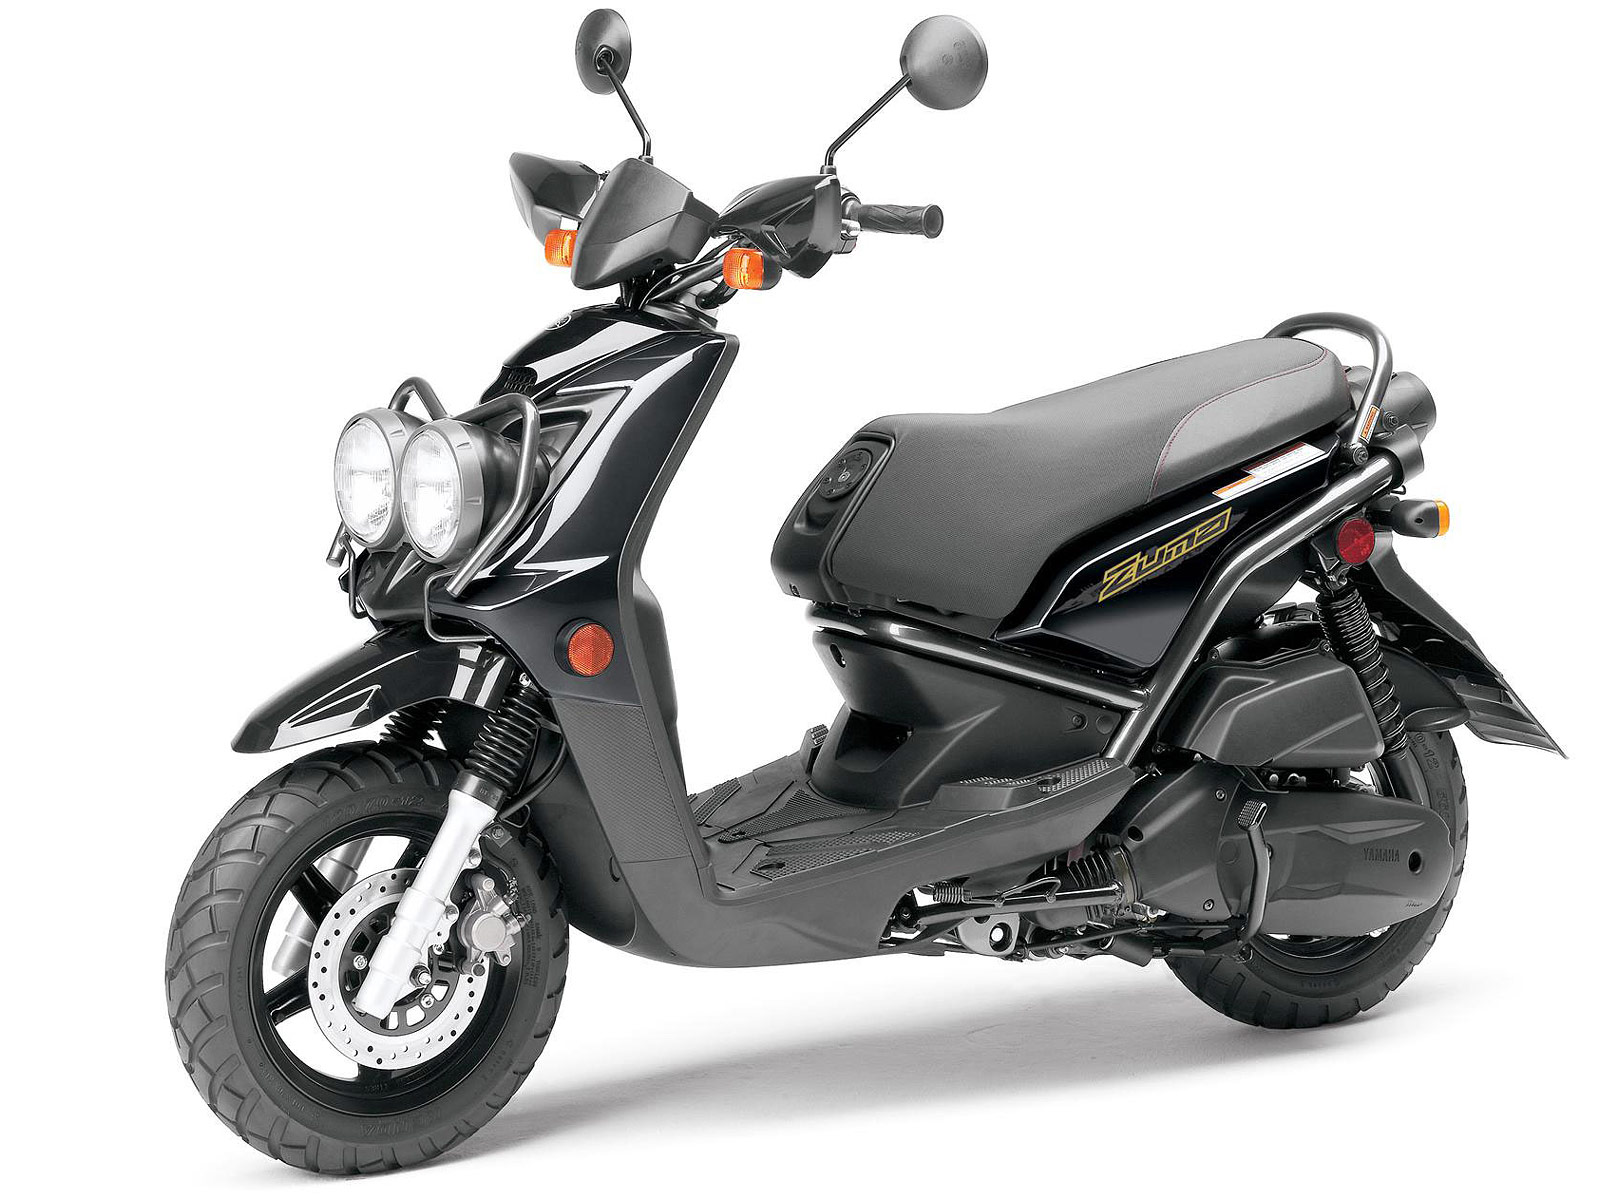 2012 Yamaha Zuma 125 Scooter Pictures  Specifications